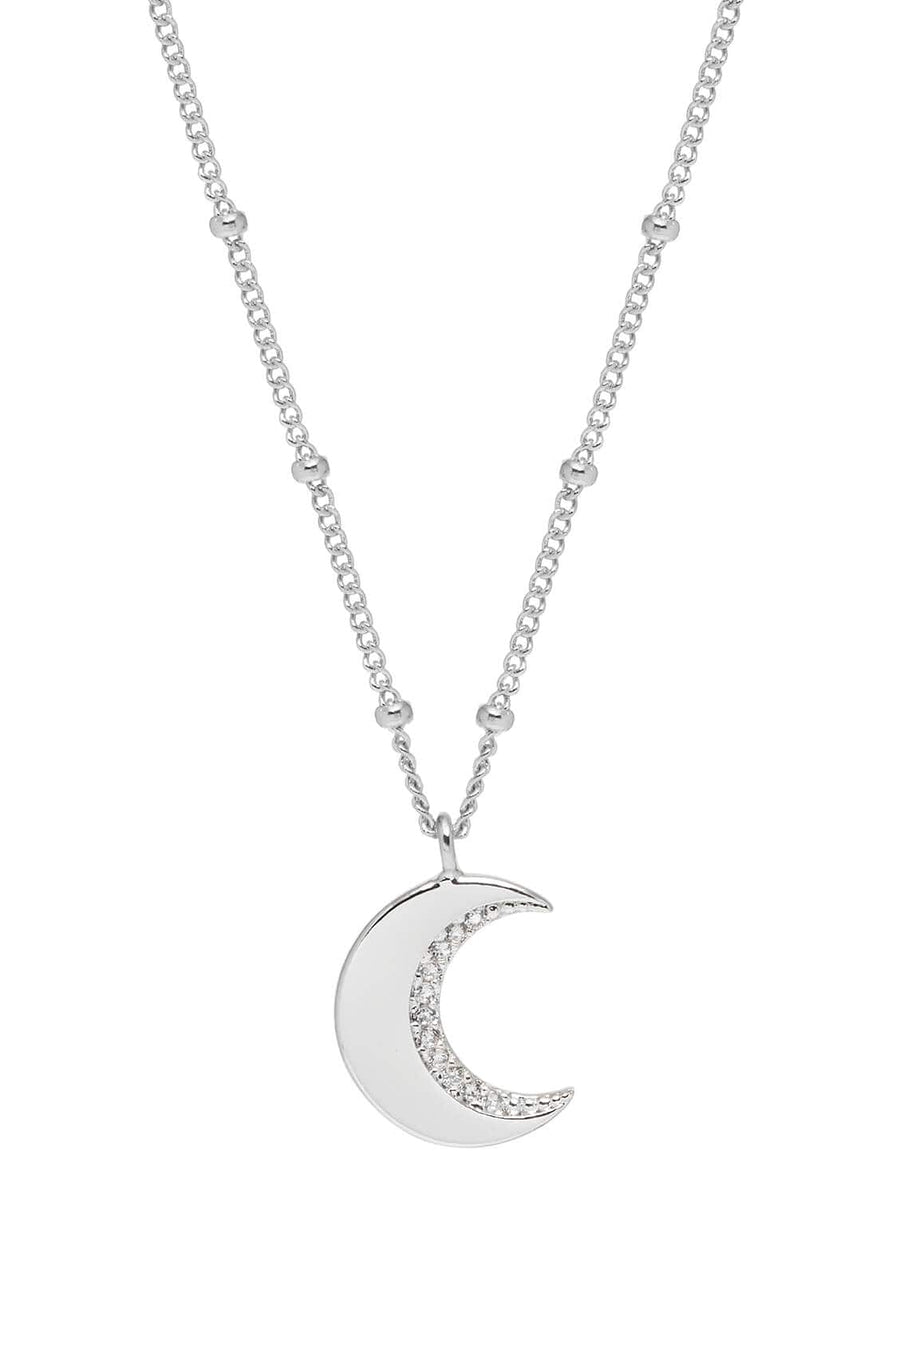 CZ Moon Necklace Silver Plated